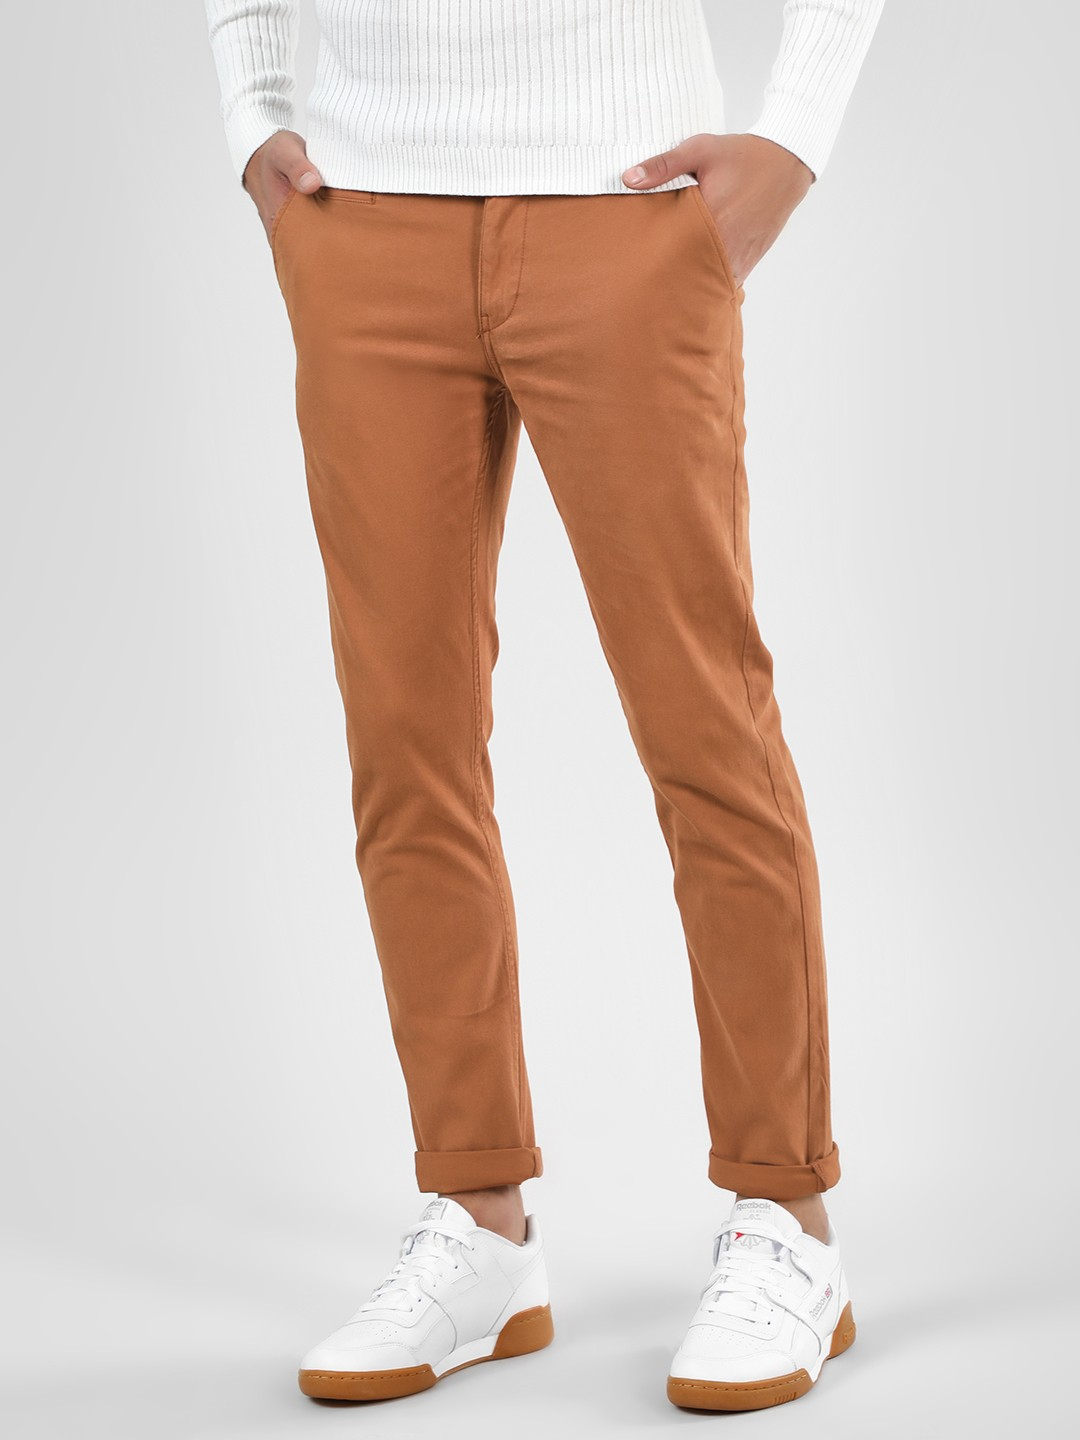 Blue Saint Brown Basic Skinny Fit Chinos 1